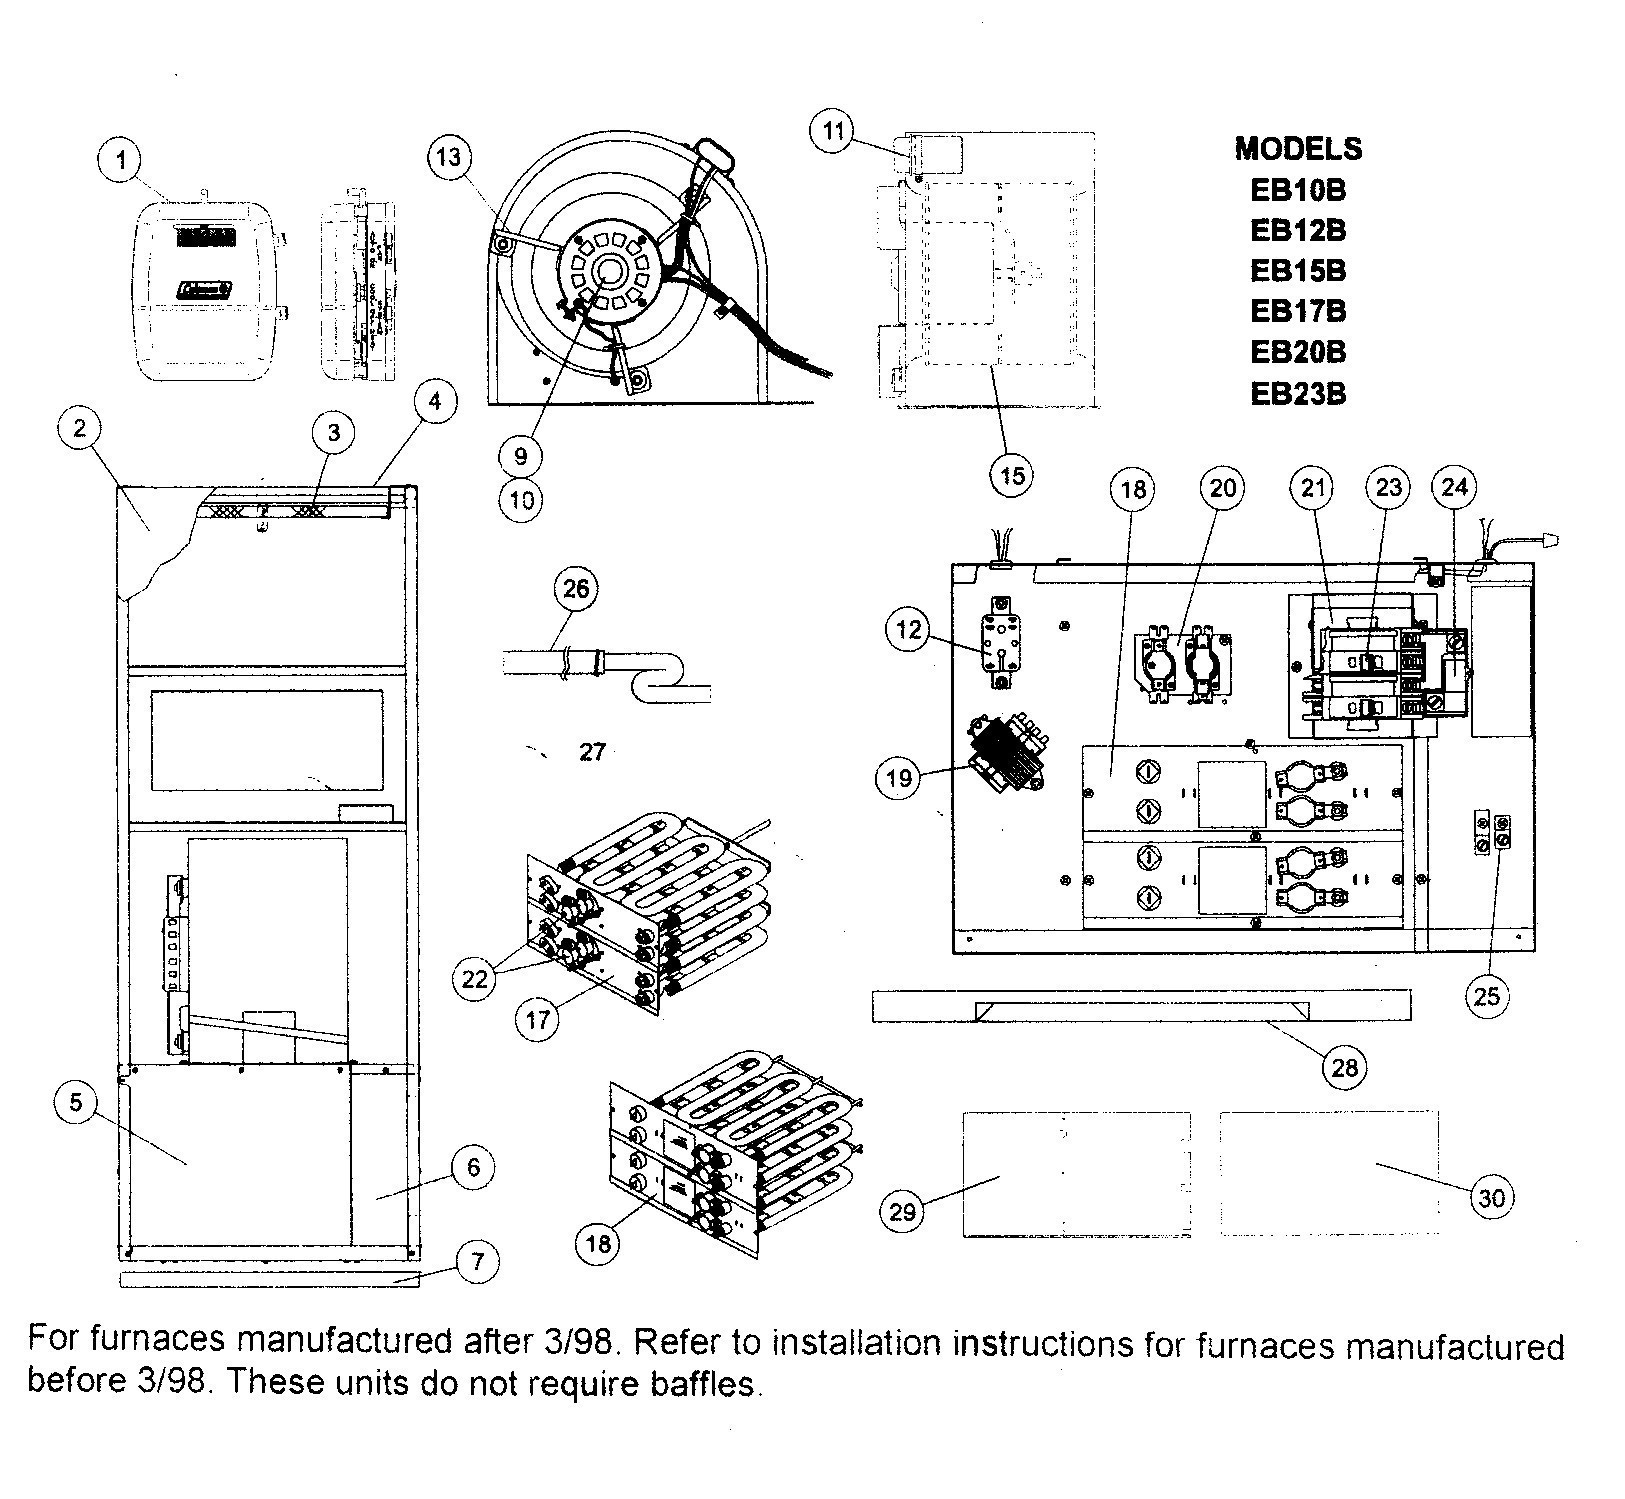 electric furnace wiring diagram sequencer Best of Coleman Electric Furnace Wiring Diagram Coleman 3400 Electric